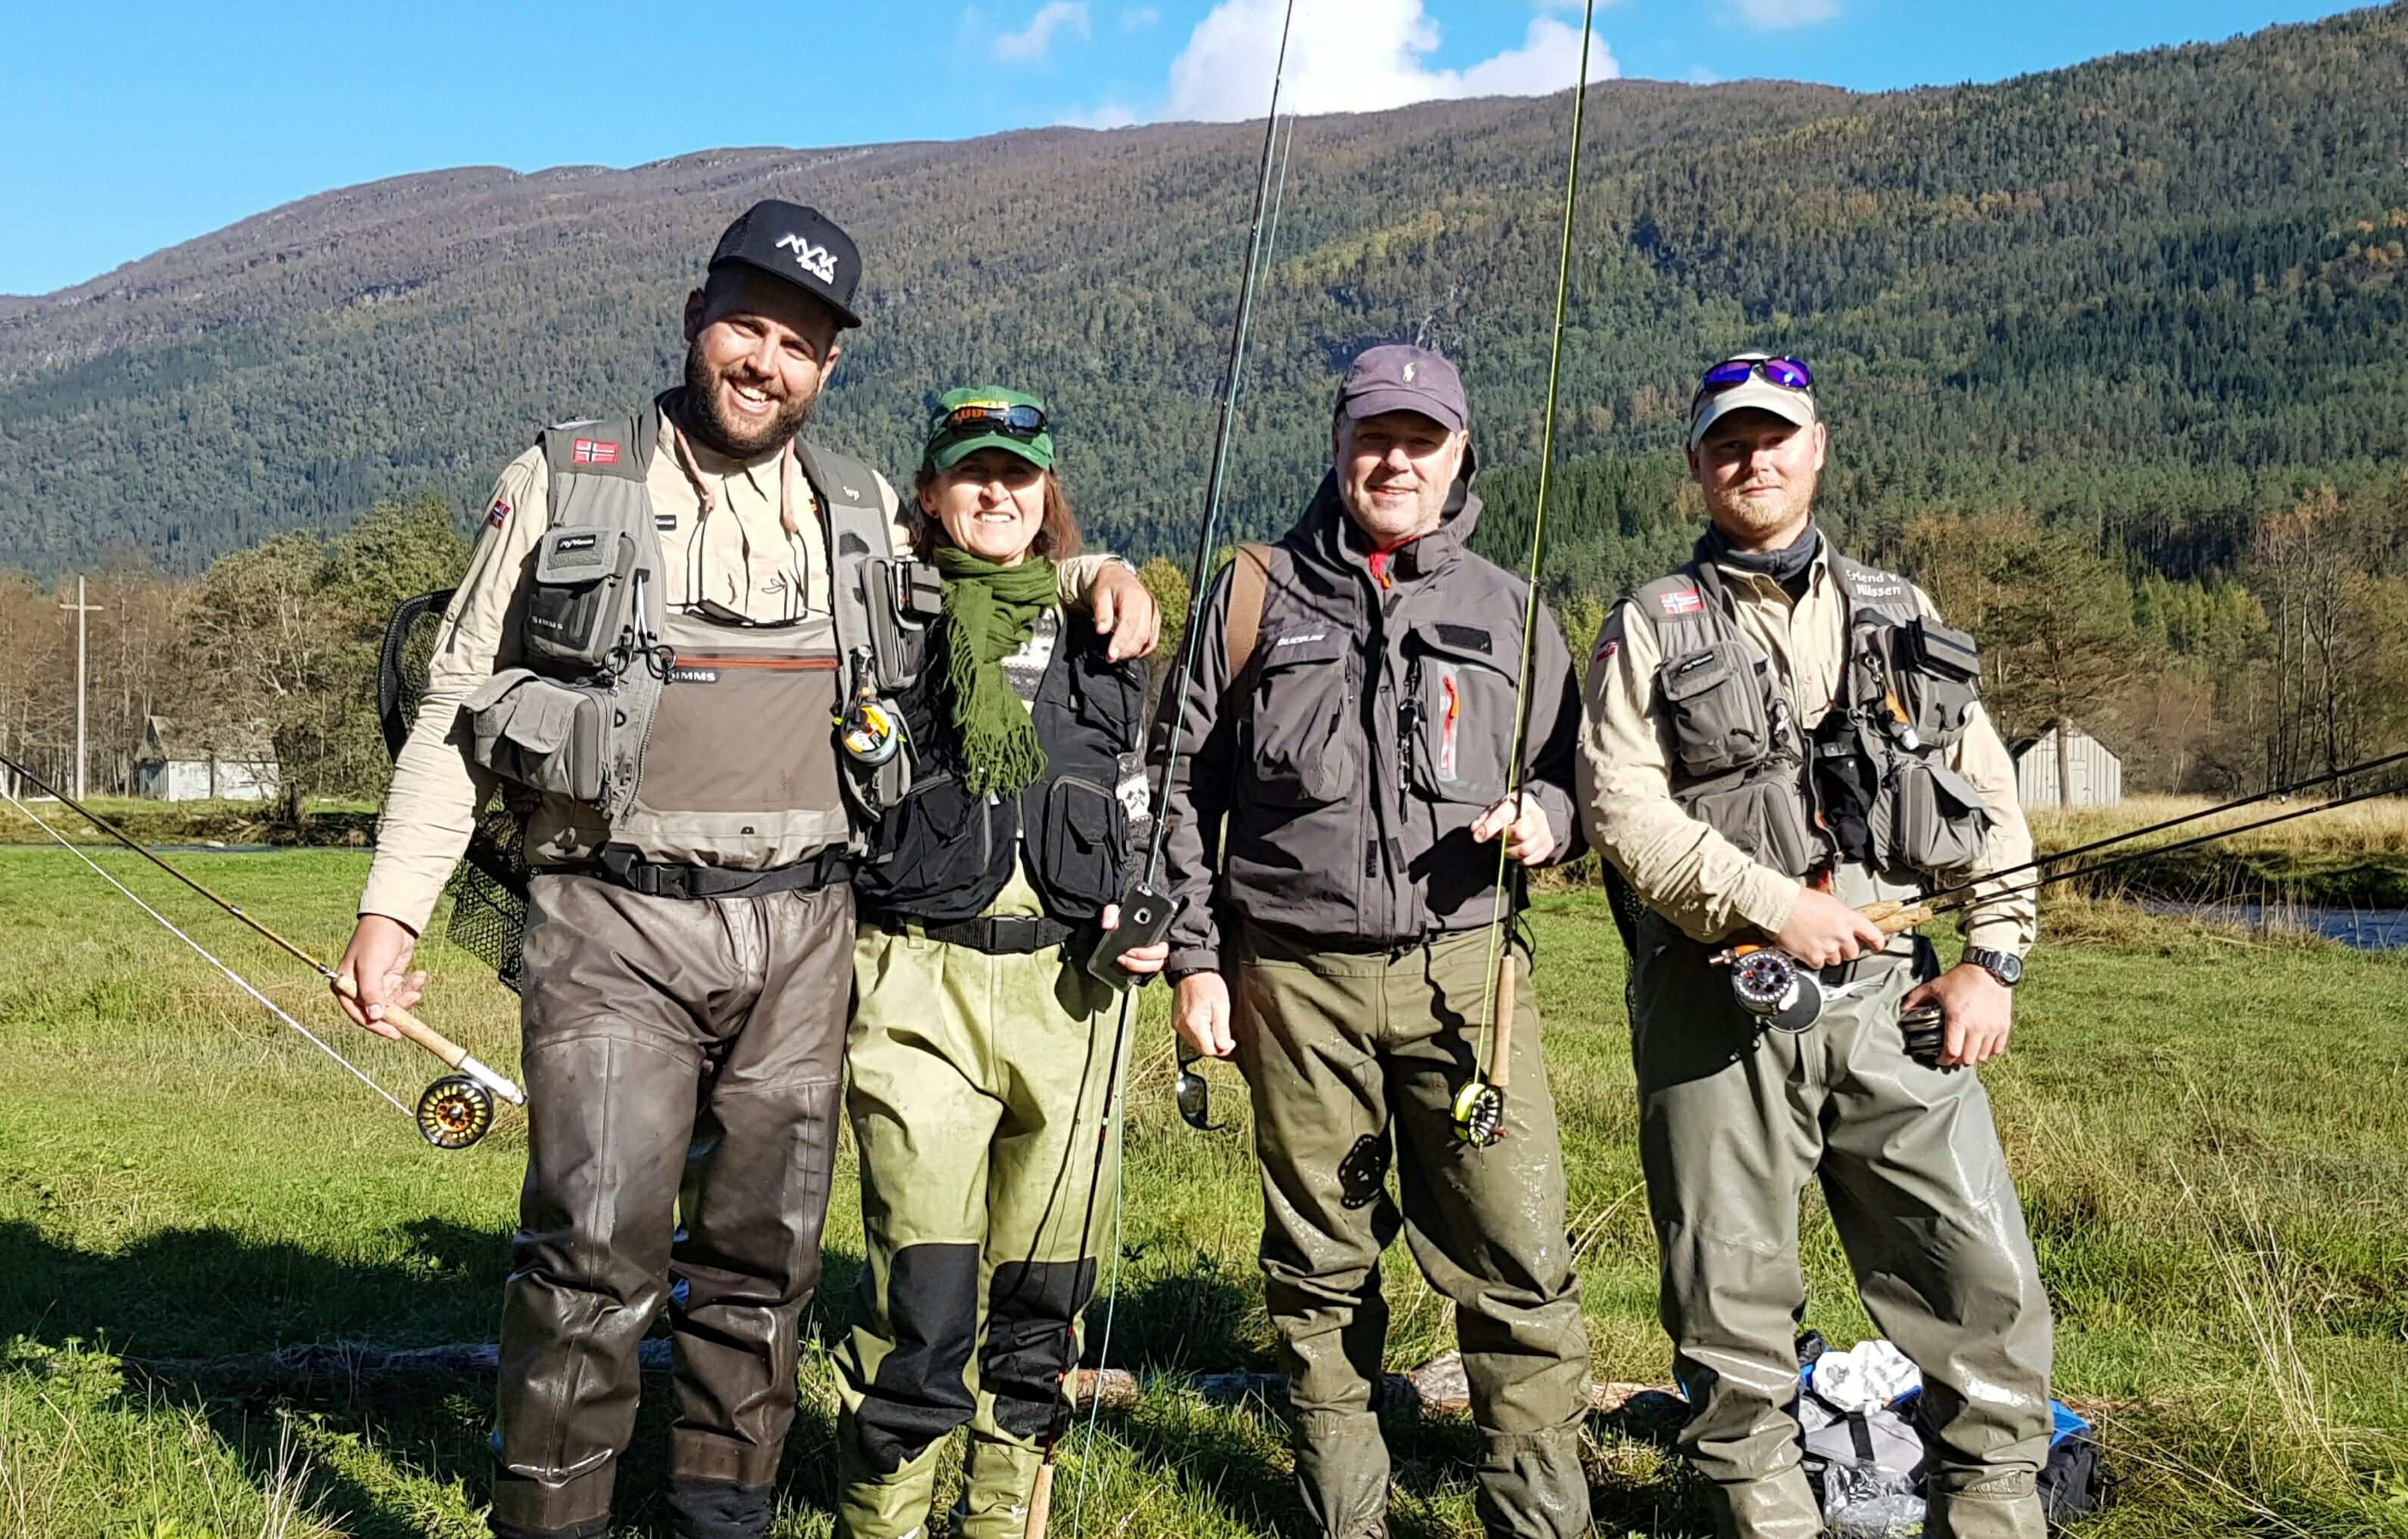 Fly fishing weekend